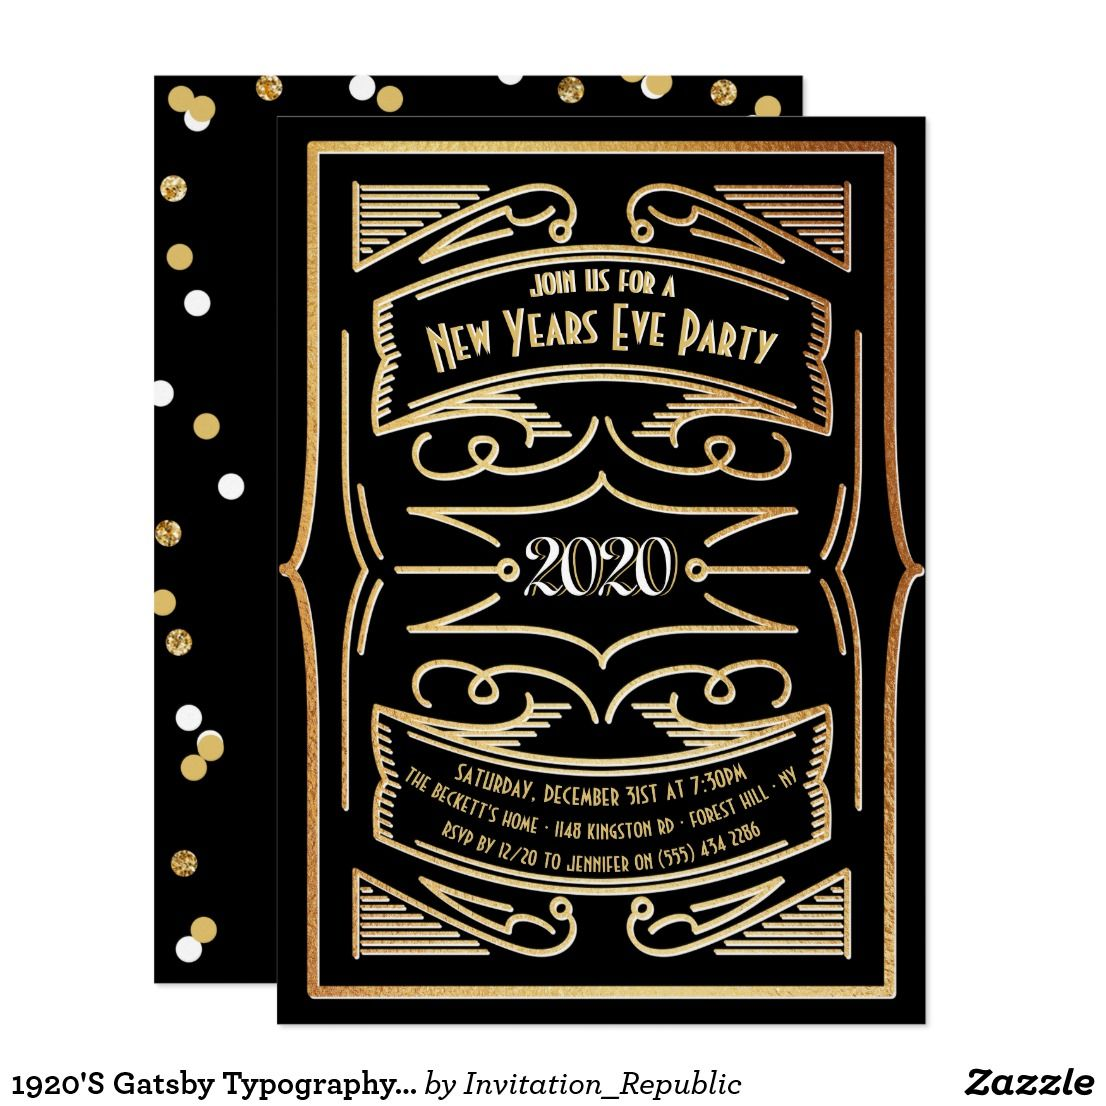 1920'S Gatsby Typography 2020 New Years Eve Party